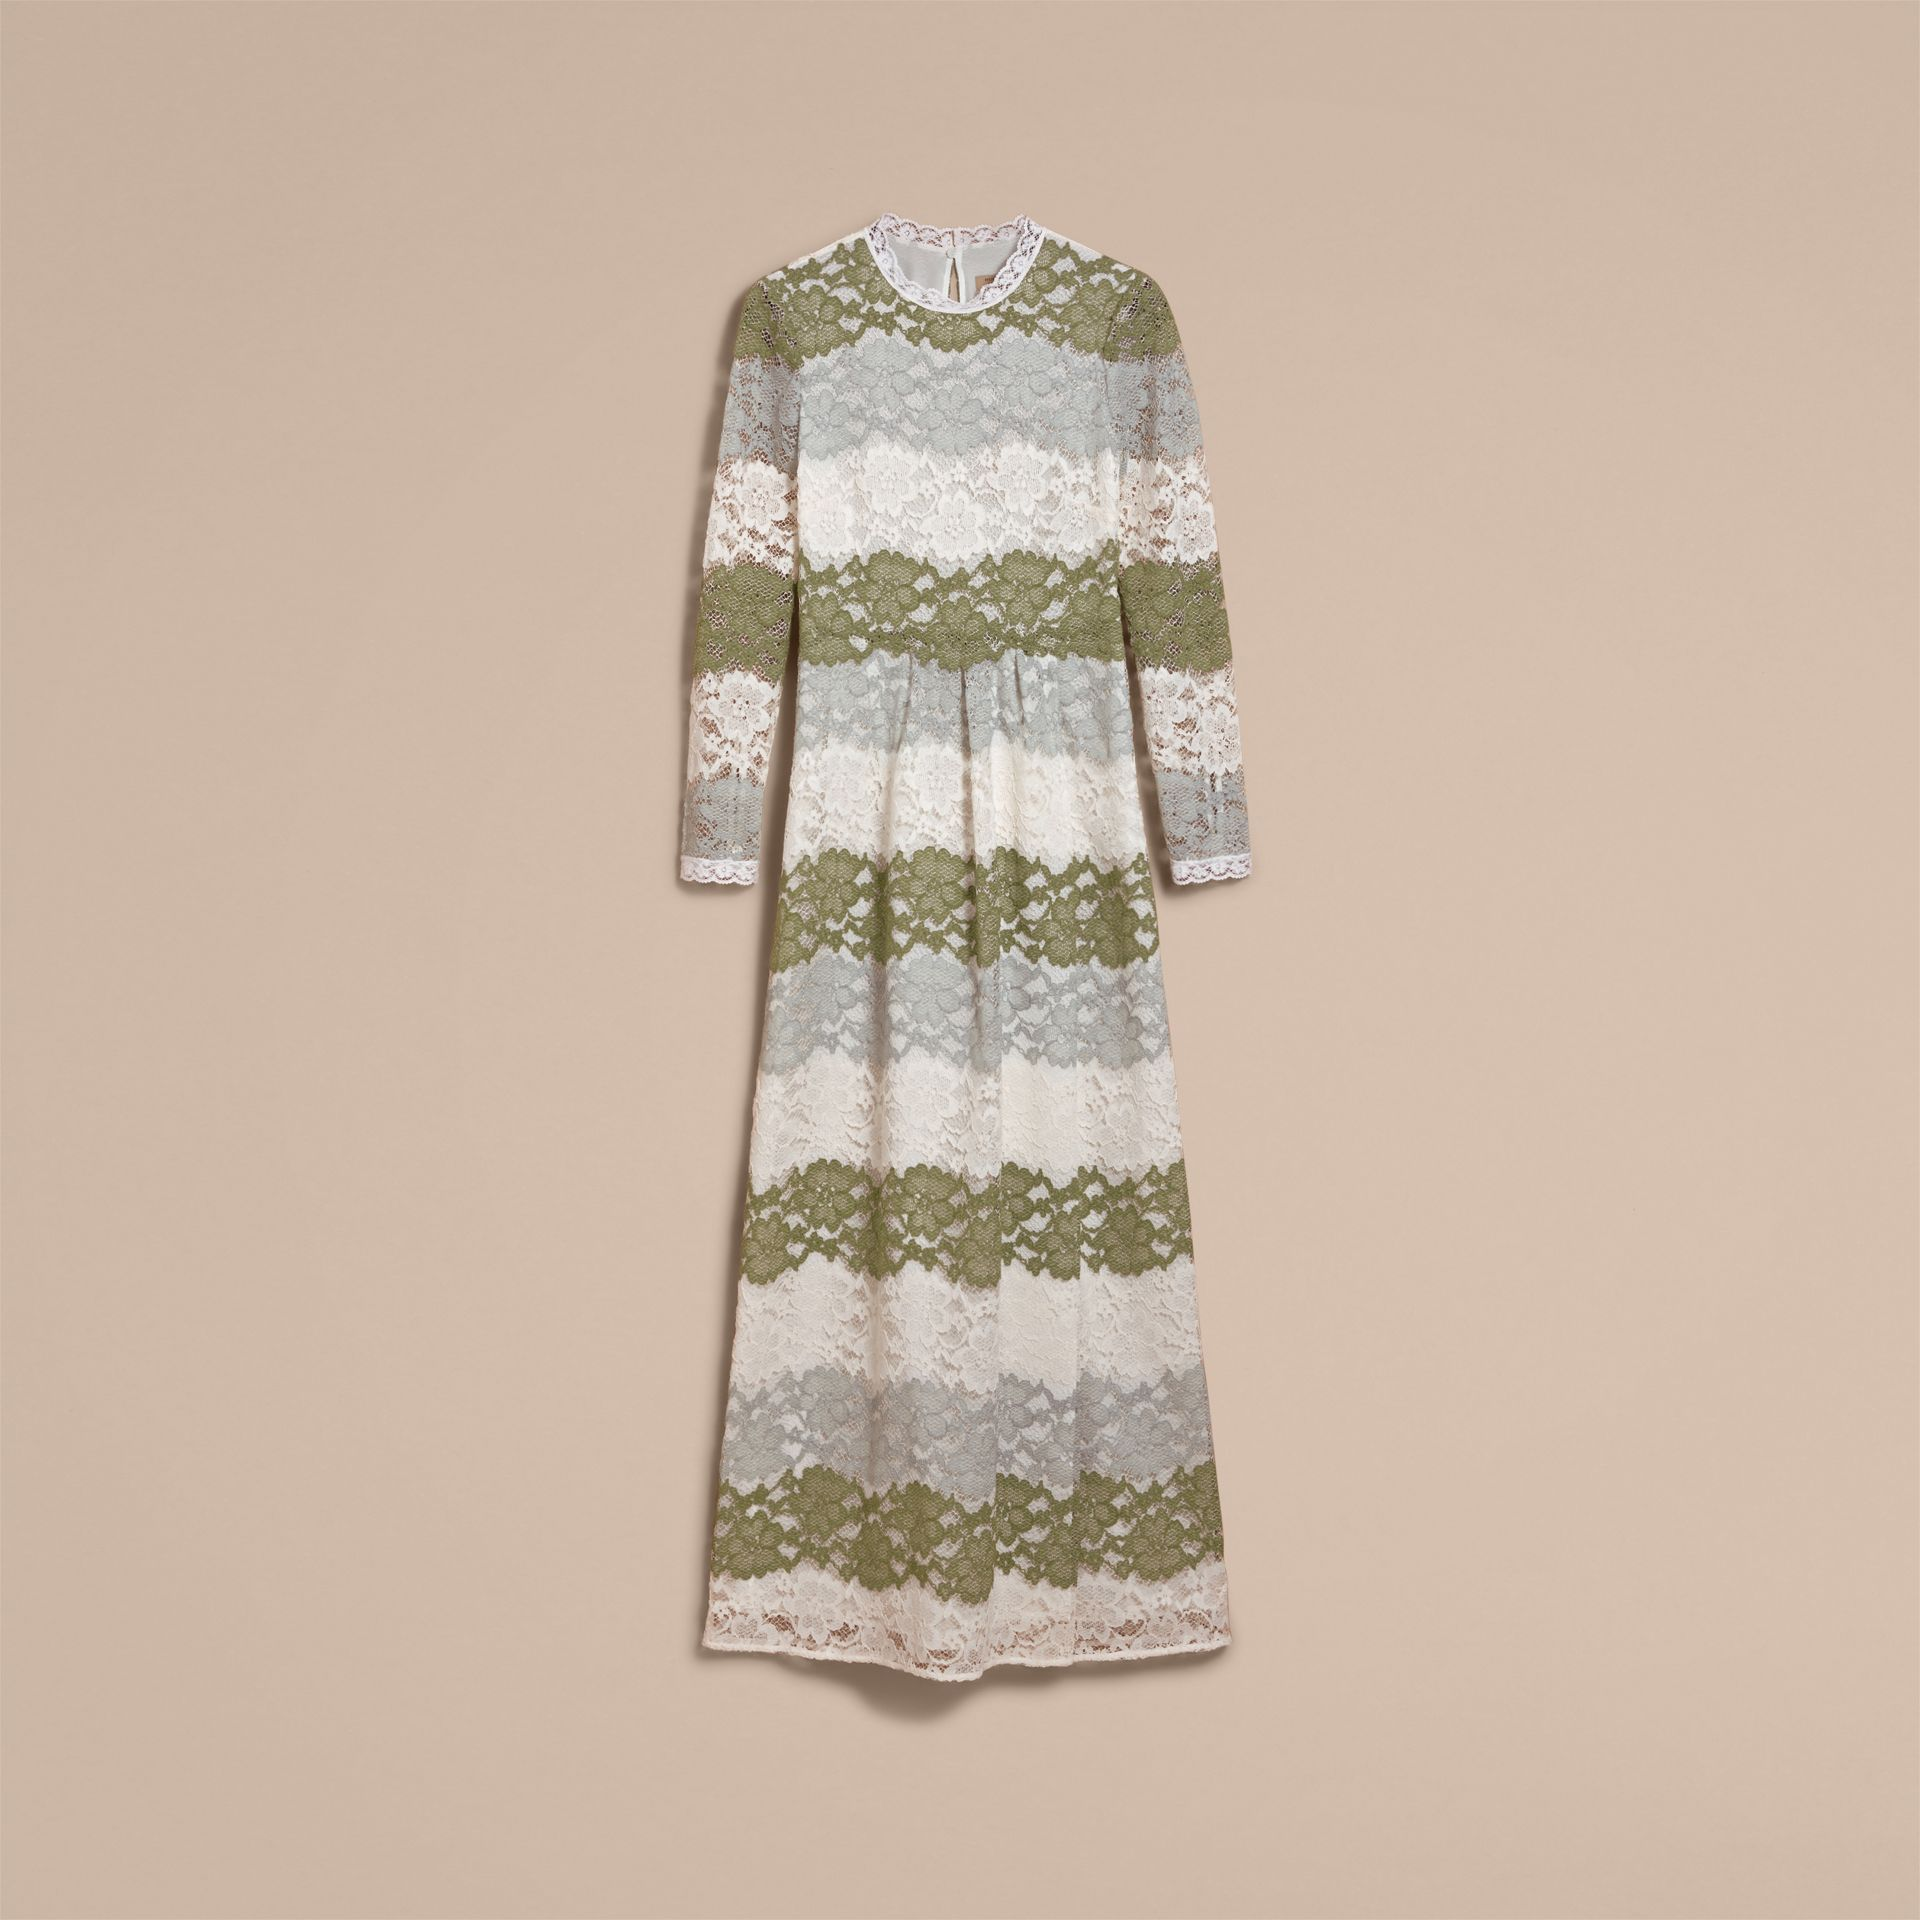 Floor-length Floral Lace Dress in Chalk Green - Women | Burberry - gallery image 4